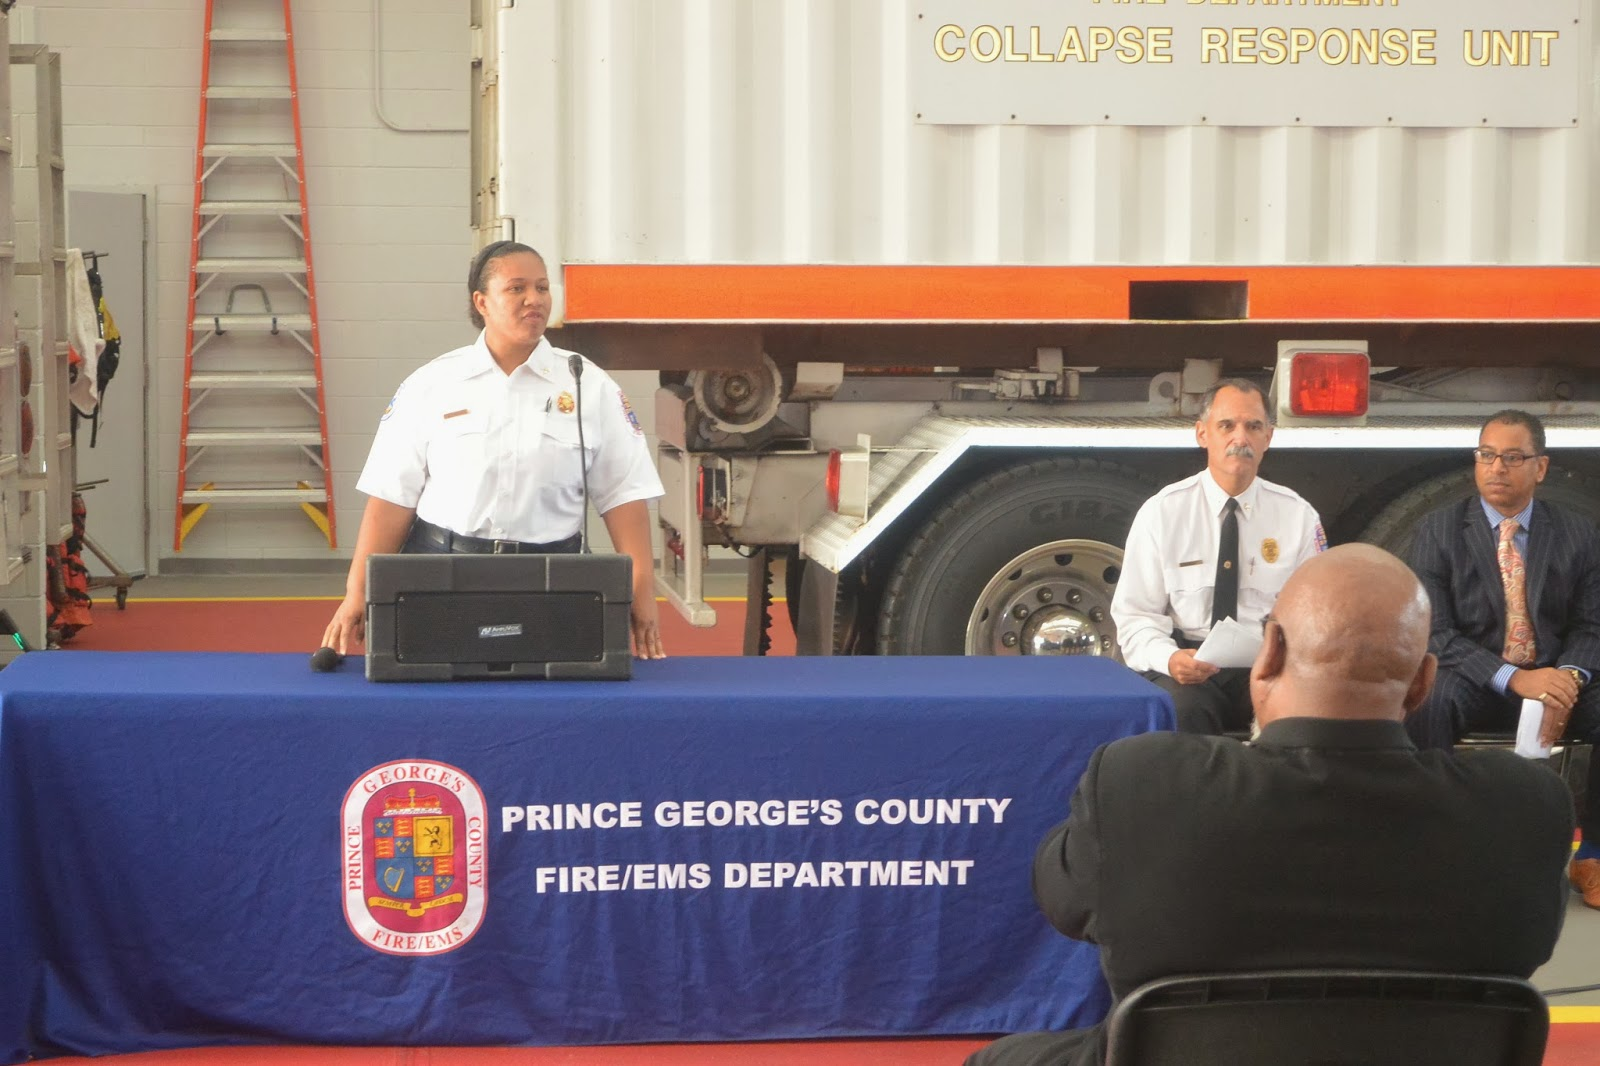 Prince George's County Fire/EMS Department: High School ...